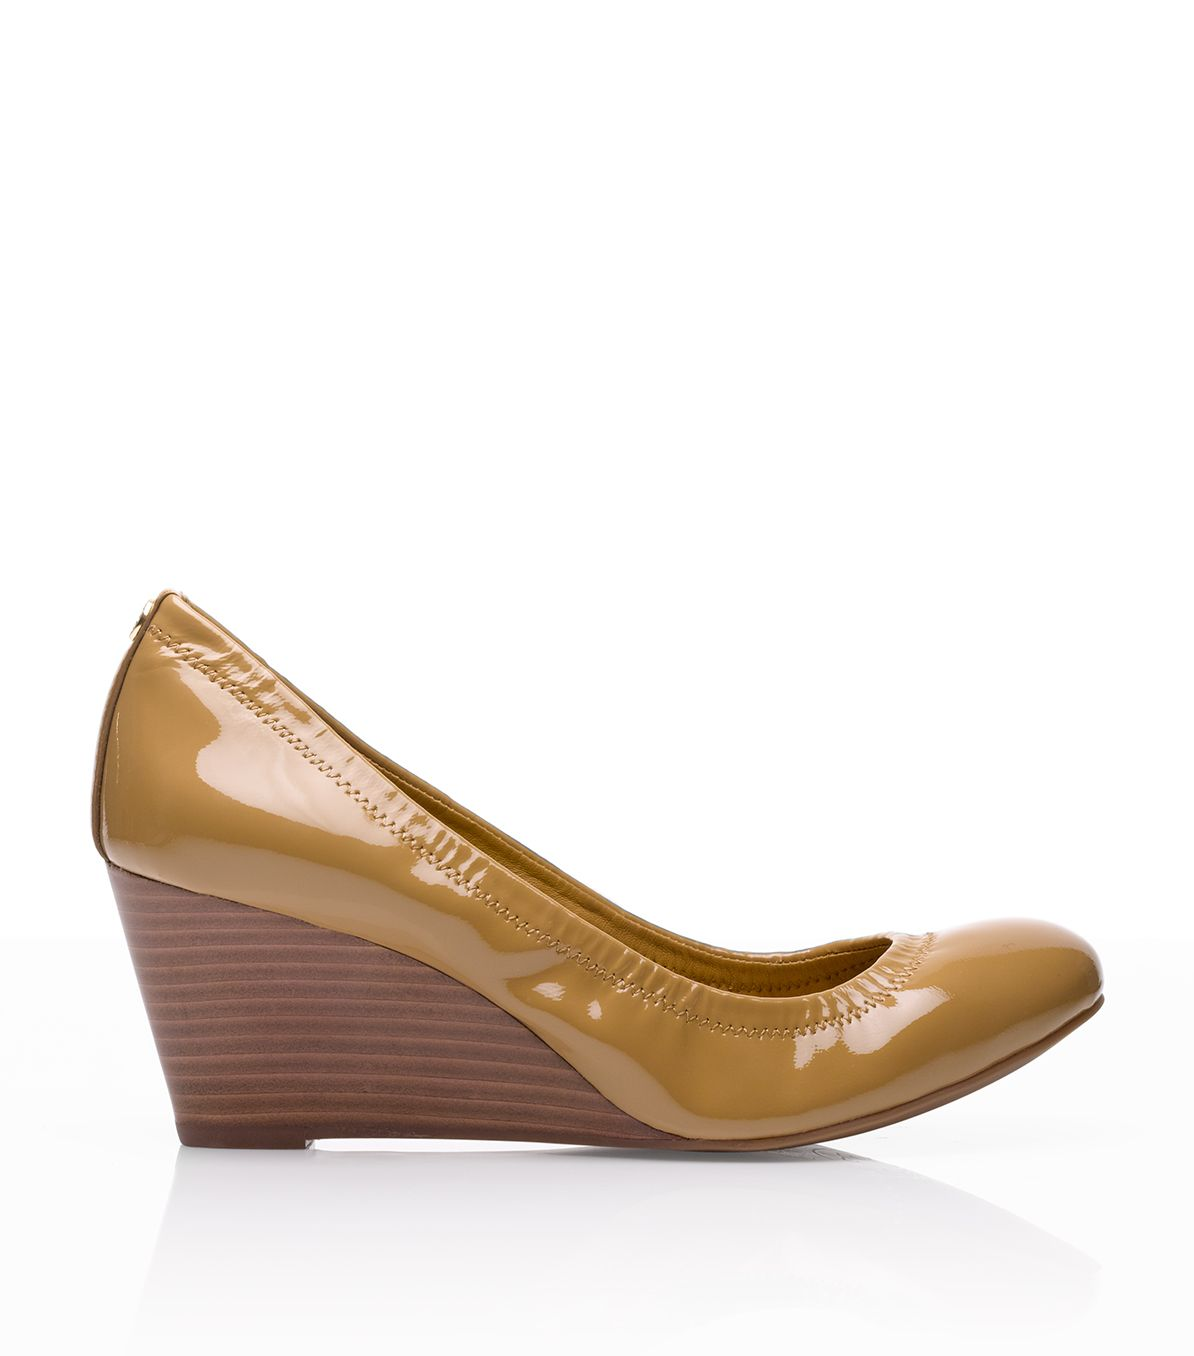 89df1bbb64c21 Lyst - Tory Burch Patent Leather Eddie Wedge in Natural